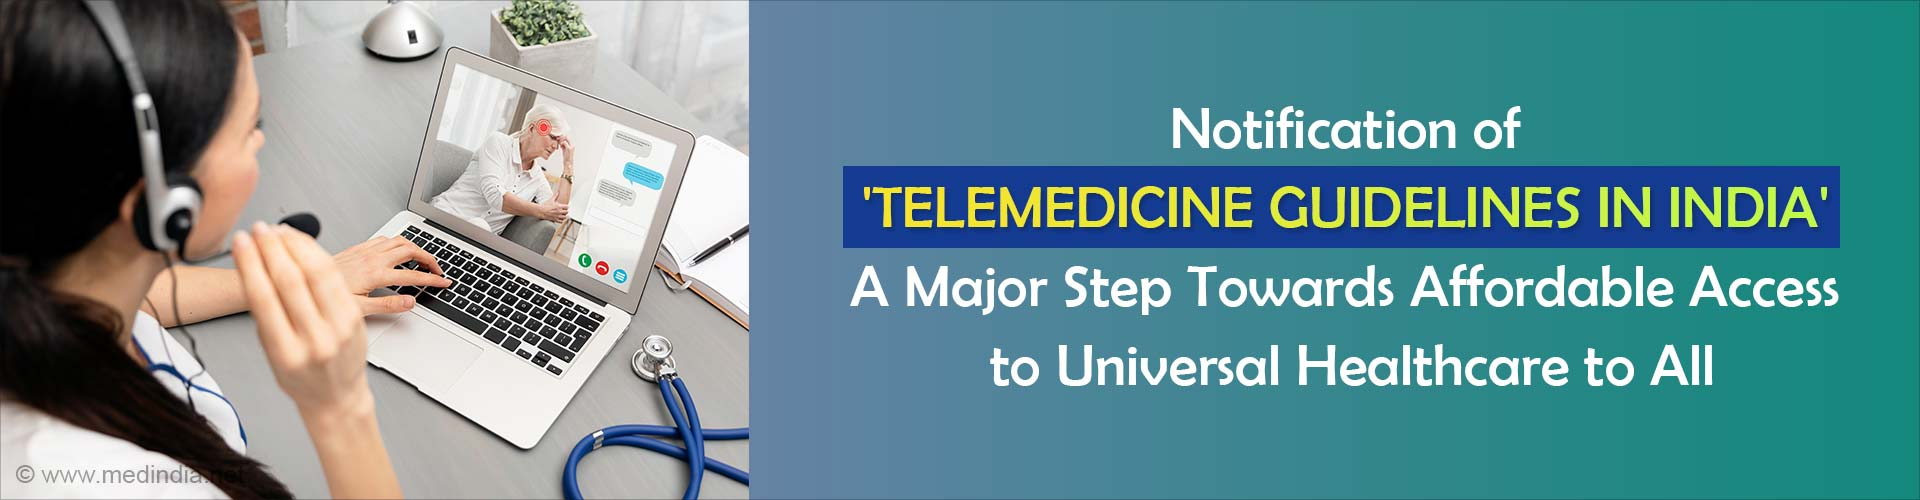 Telemedicine Guidelines Released in India Notified and Gazetted